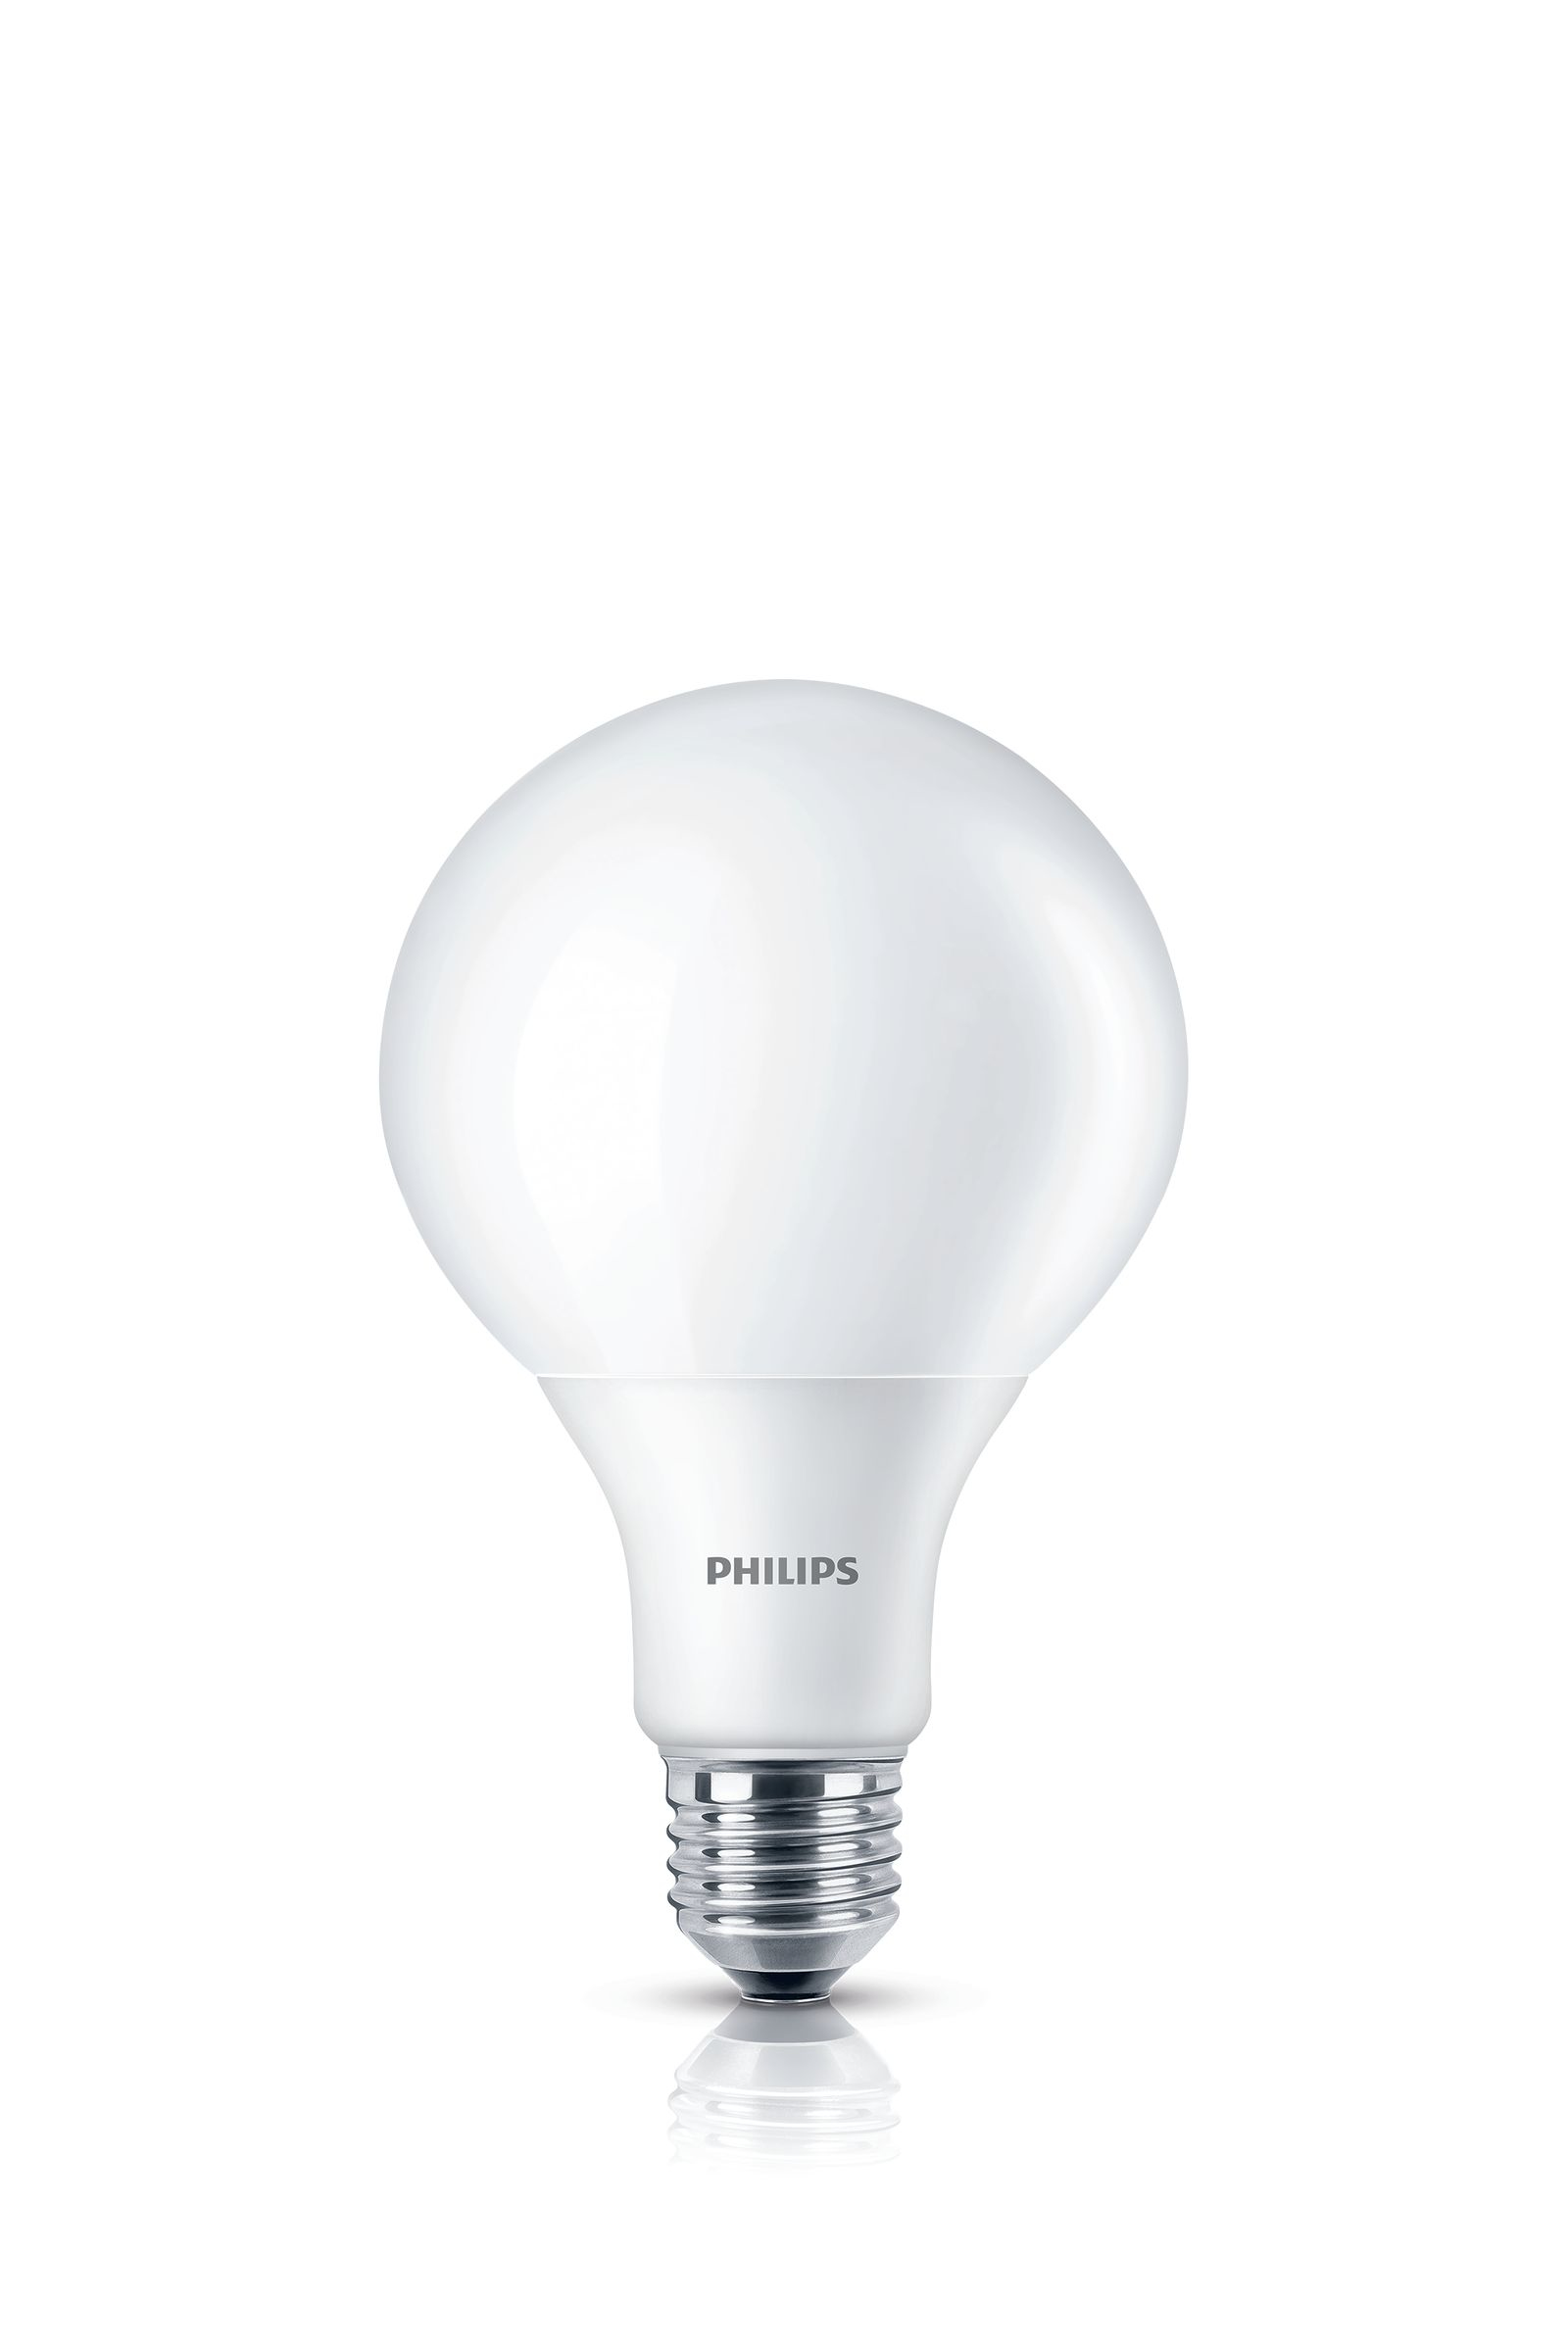 Philips - Lampadina a LED - Ledgl120sm